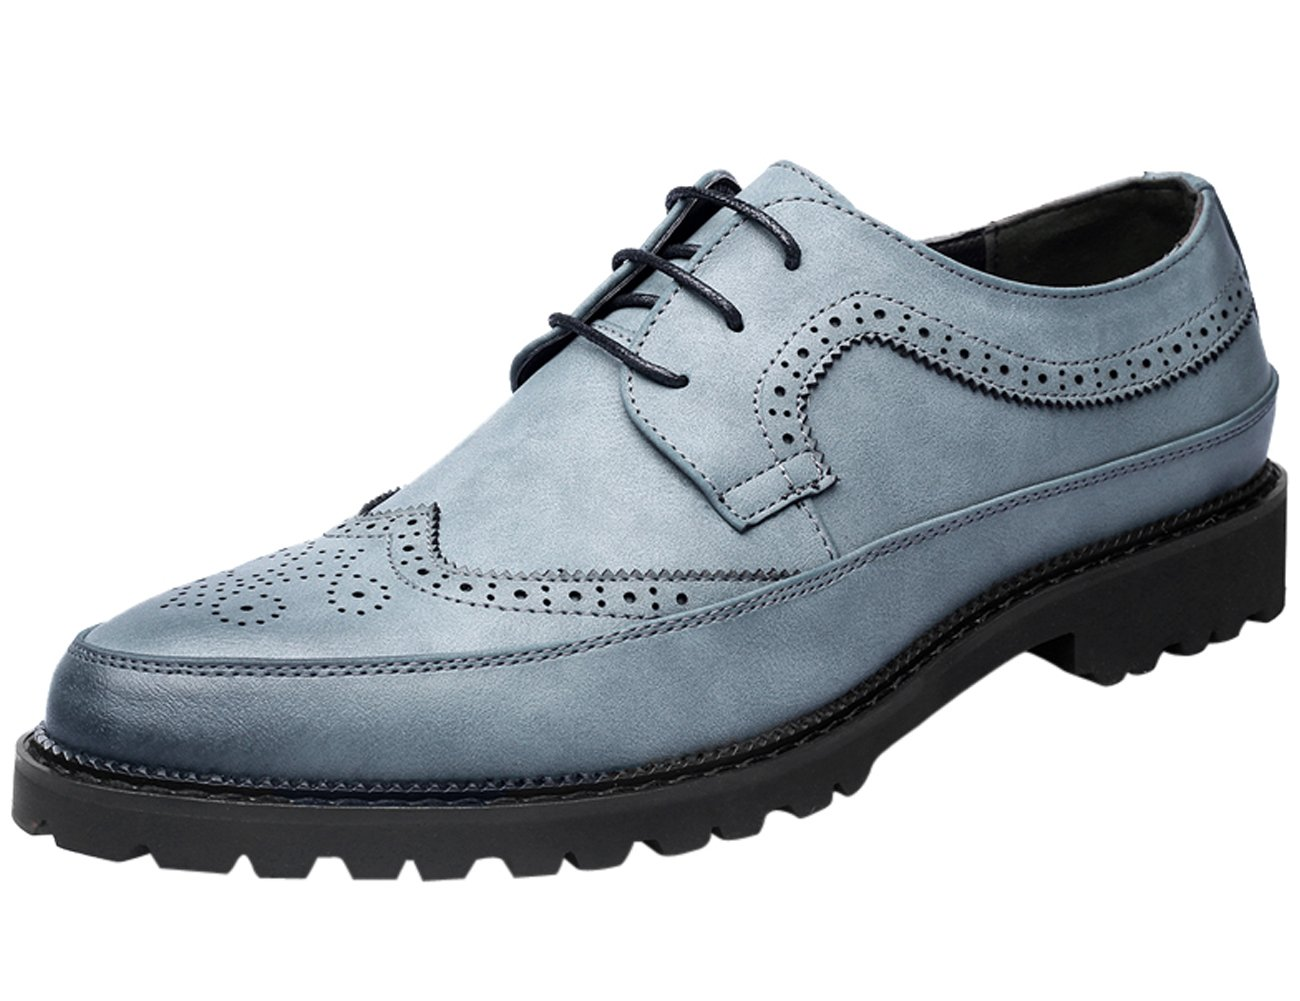 Santimon Running Shoes Men Leather Classic Casual Dress Shoes with Leather Lining Blue 5 D(M) US